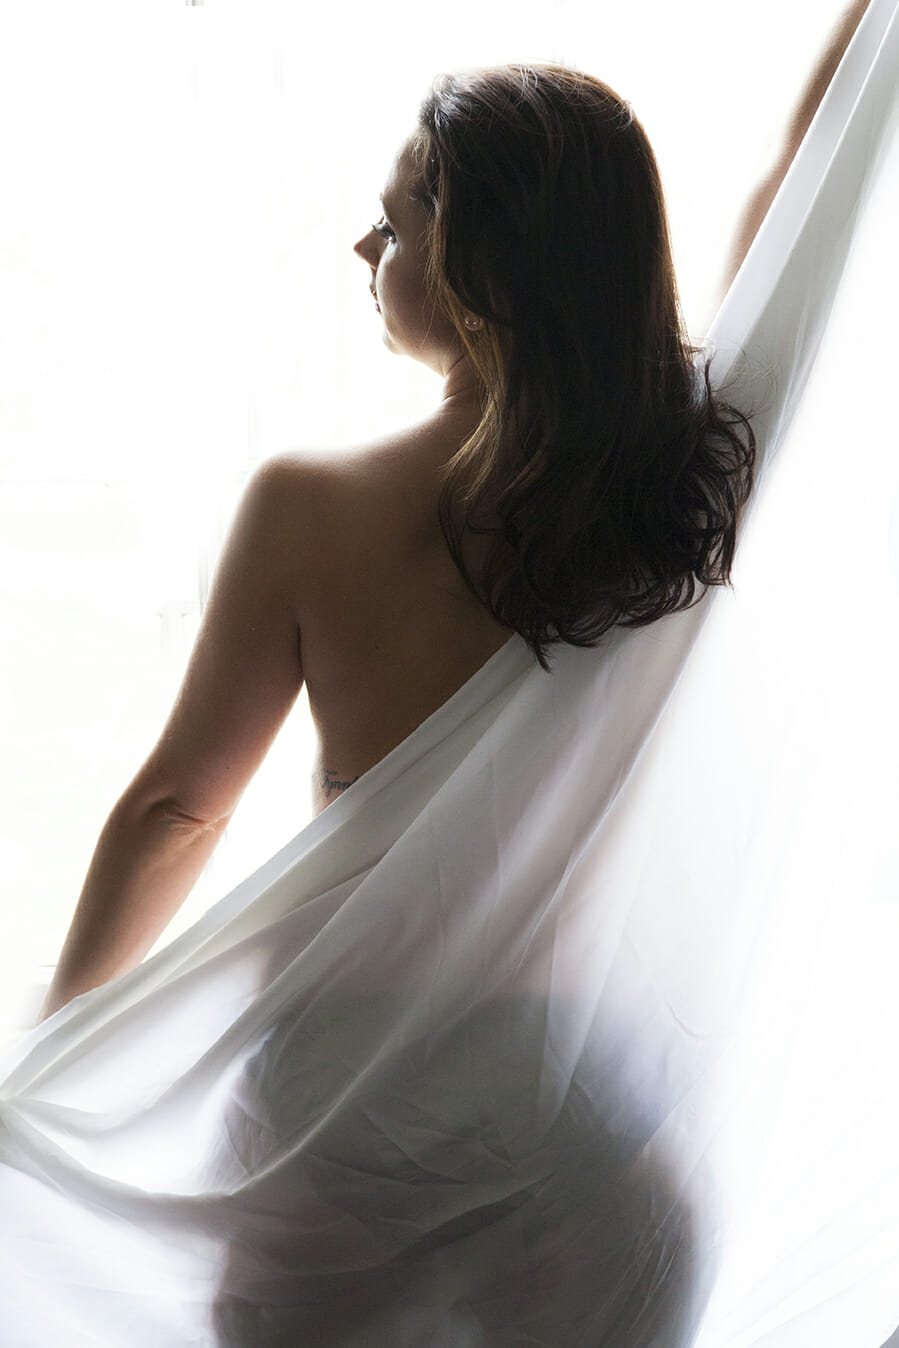 White sheet Silhouette